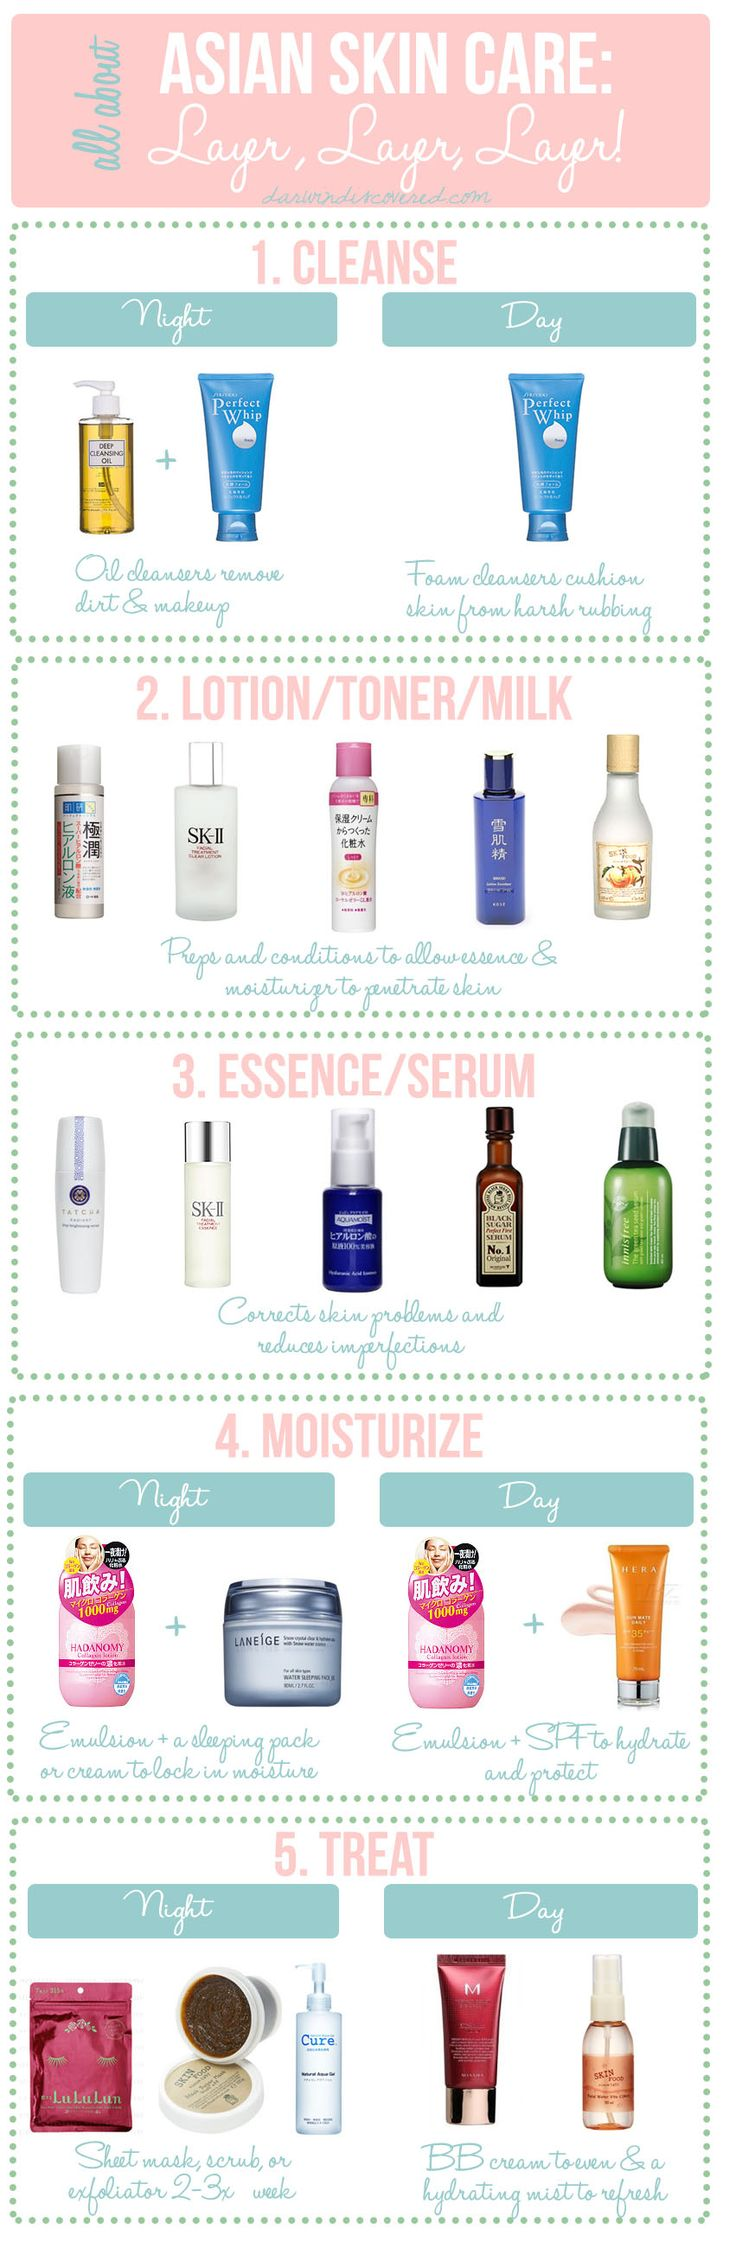 Asian skin care: product recommendations and information on how to layer. Is always good to have a reminder because of all the memeboxes I have